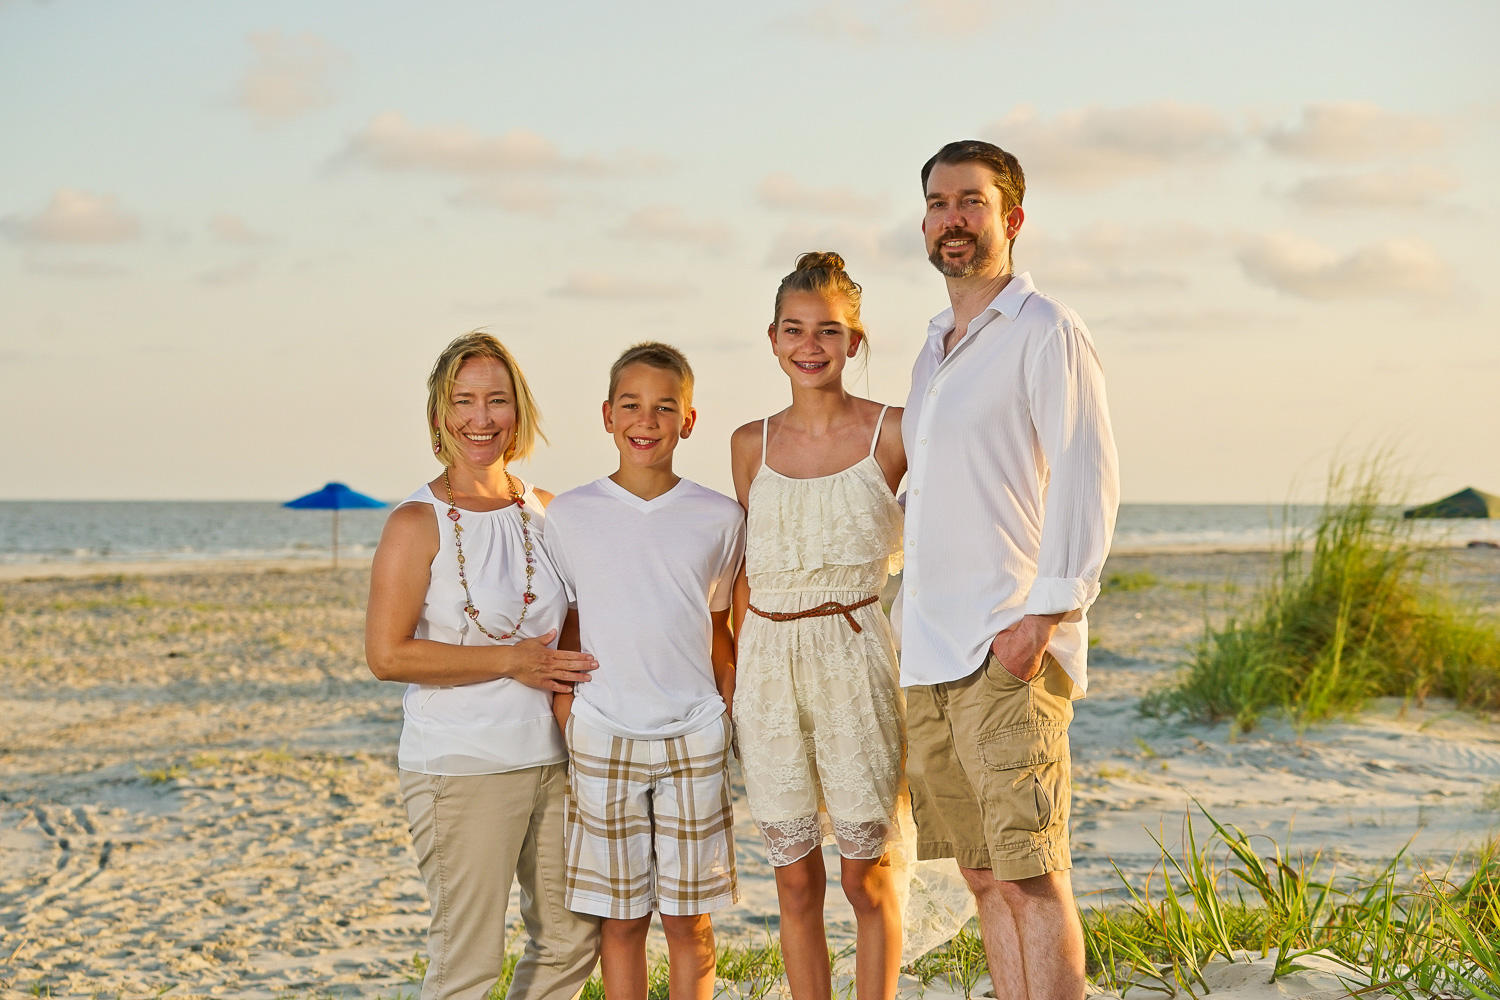 beach_portraits_beaufort-48.jpg